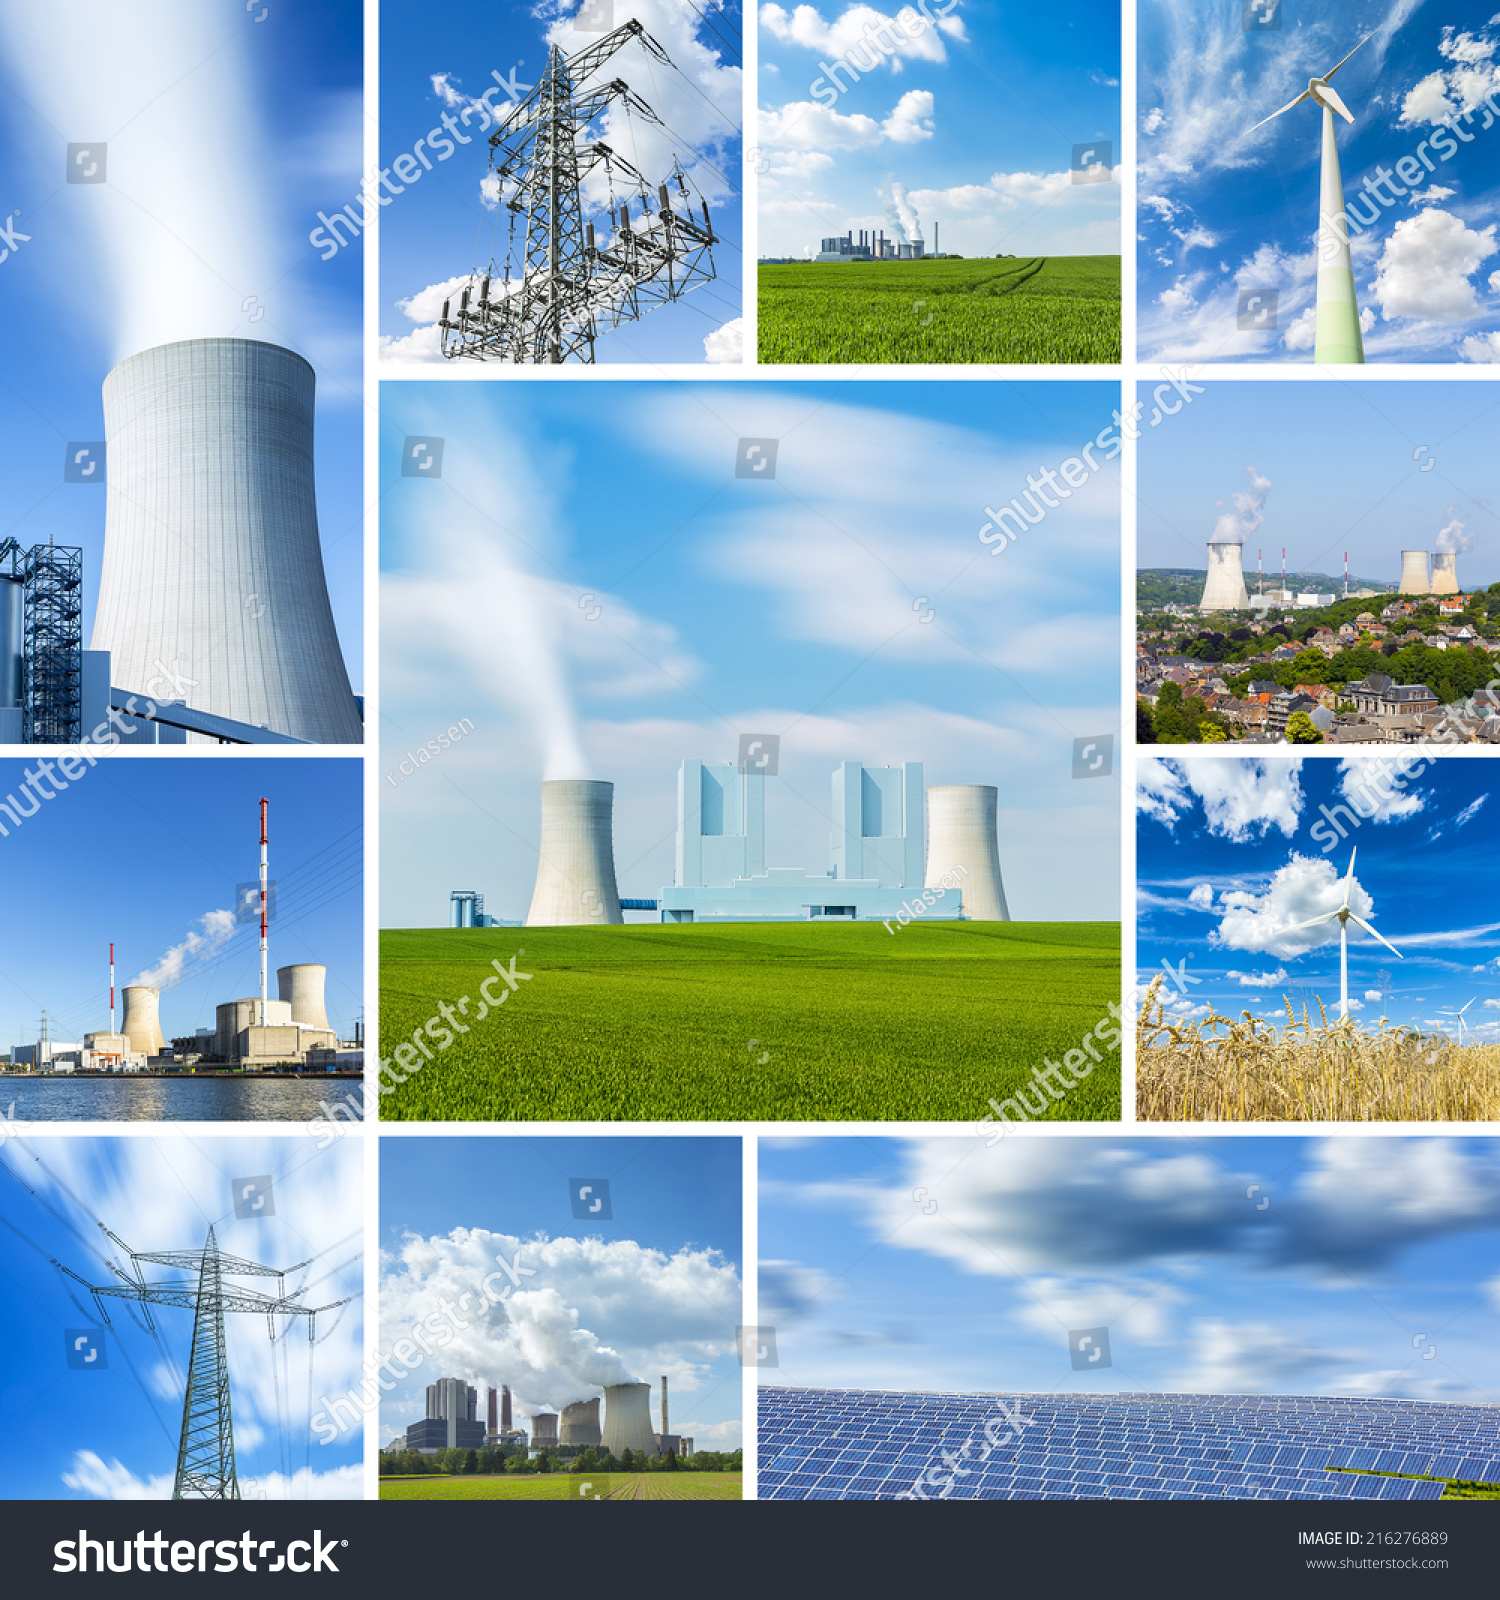 nuclear power and alternatives to natural resources Alternative energy is energy provided from sources other than the three fossil fuels: coal, oil, and natural gas alternative sources of energy include nuclear power, solar power, wind power, water power, and geothermal energy, among others.